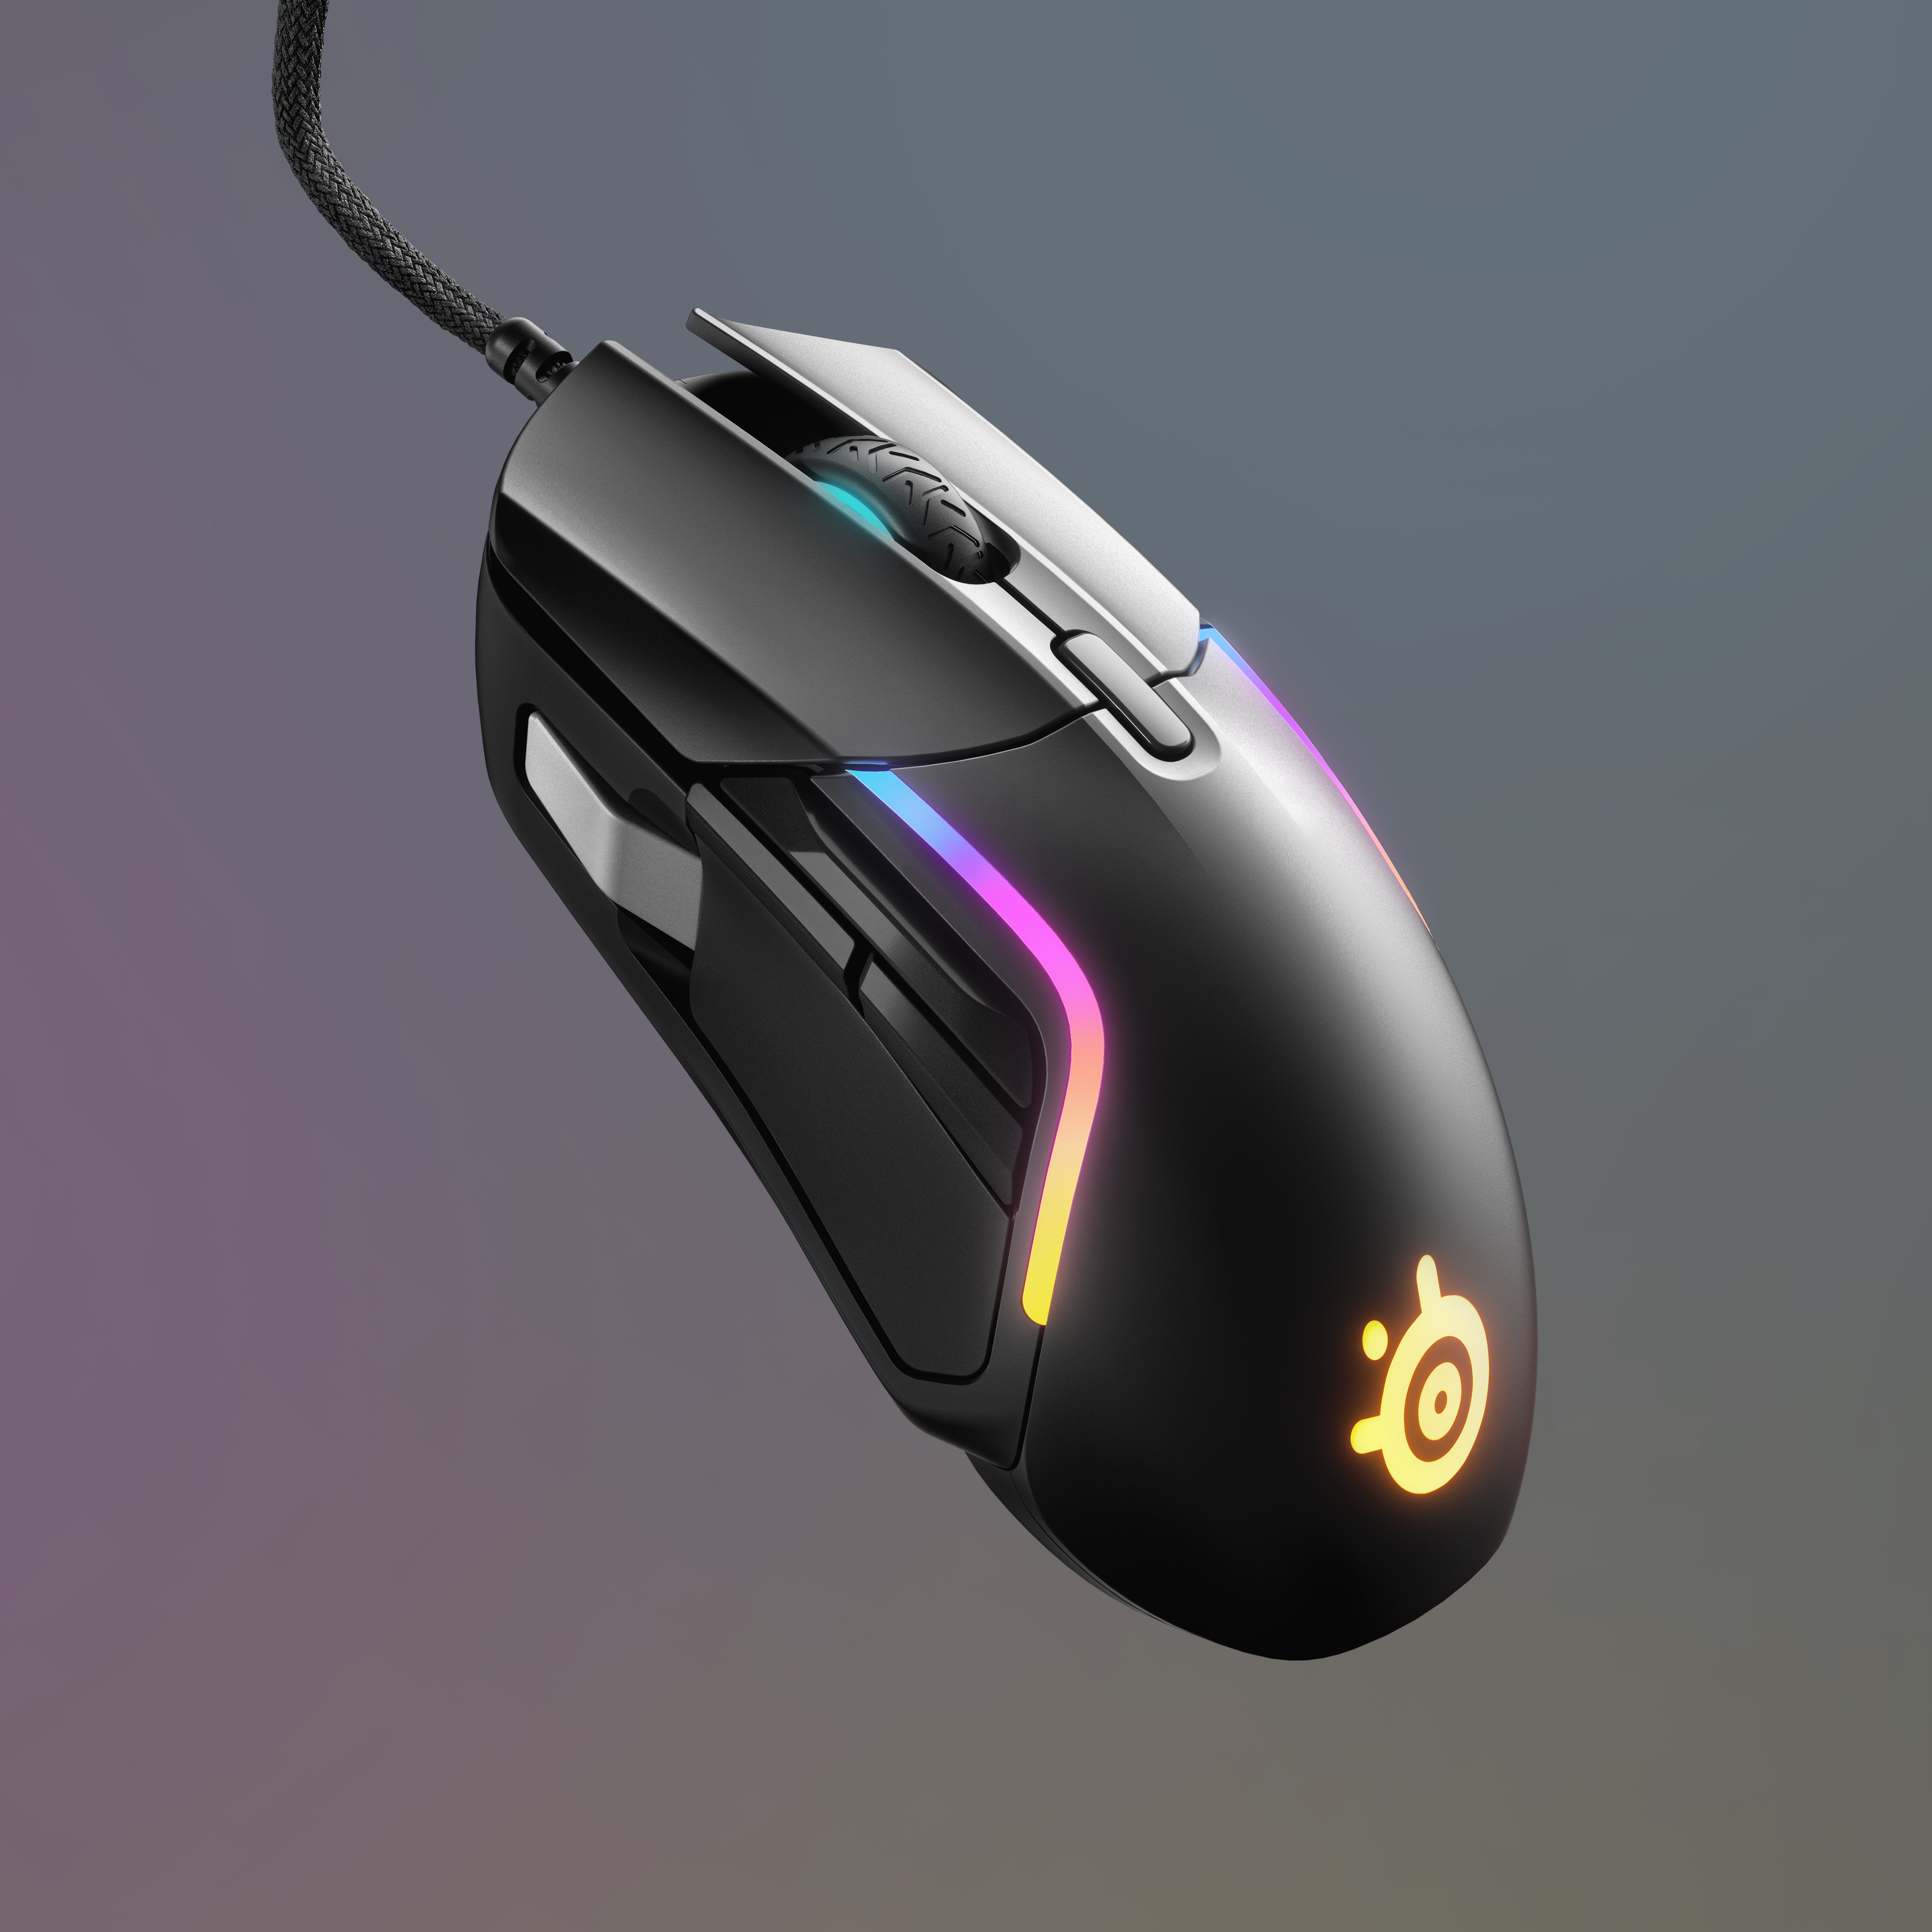 Rival 5 gaming mouse